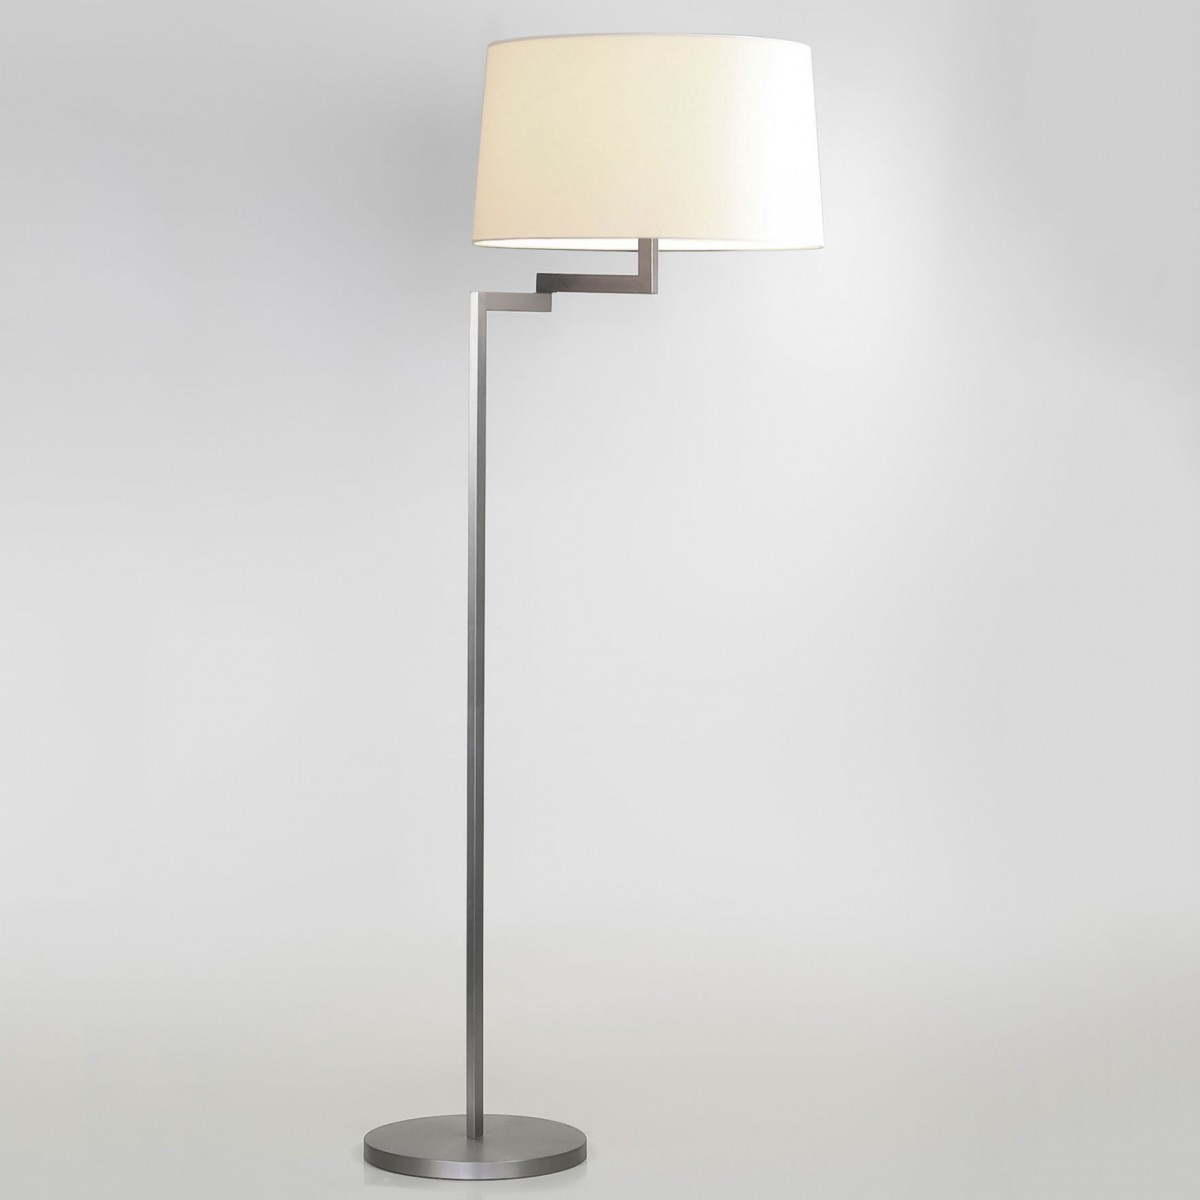 Astro Momo Floor Brushed Stainless Steel Floor Lamp at UK